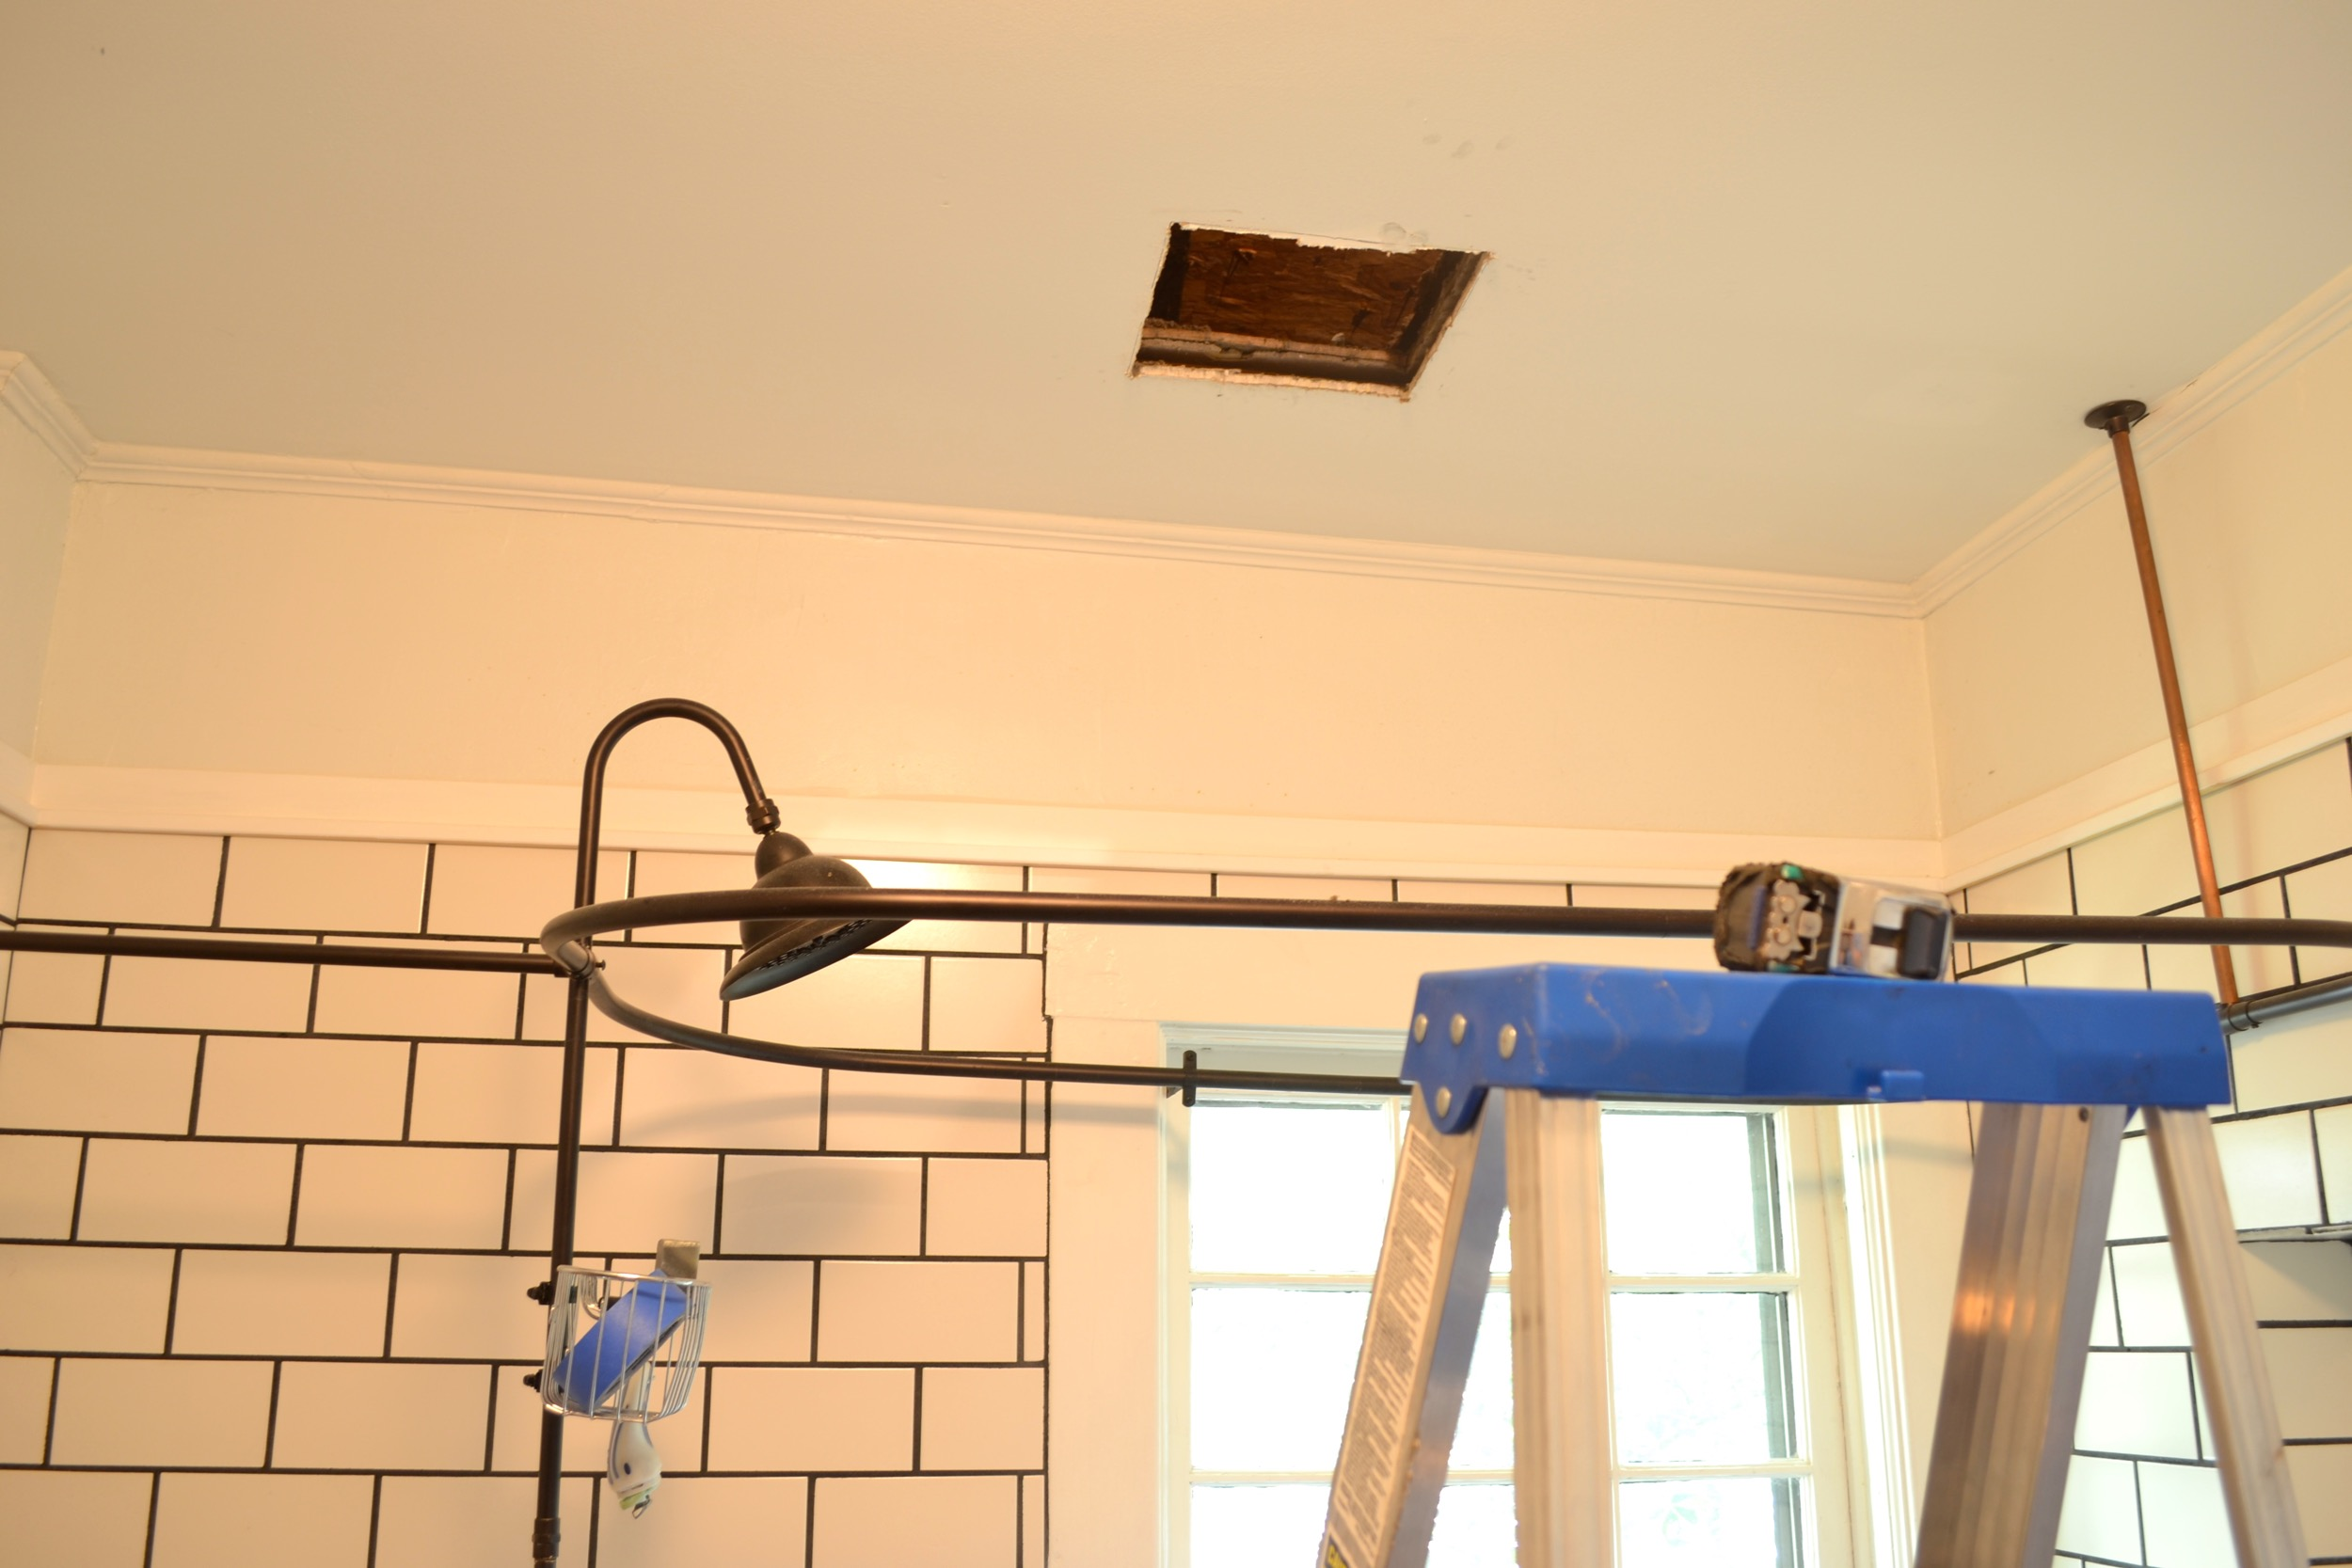 Exhaust-fan-installation-how-to08.jpg